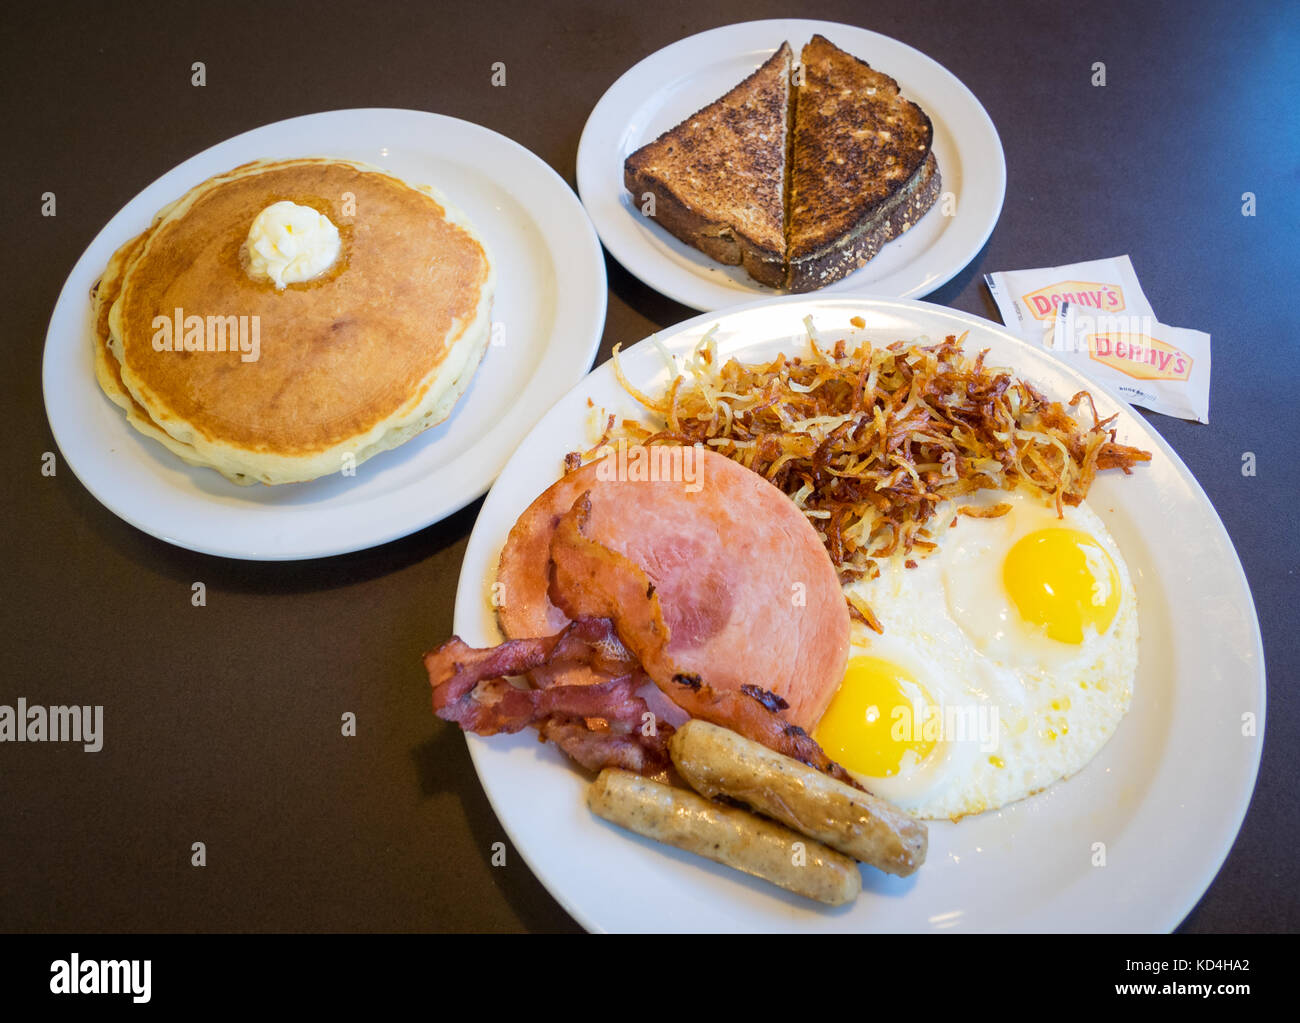 A Grand Slam breakfast from Denny's (Denny's Diner), a well-known pancake house and fast casual restaurant - Stock Image